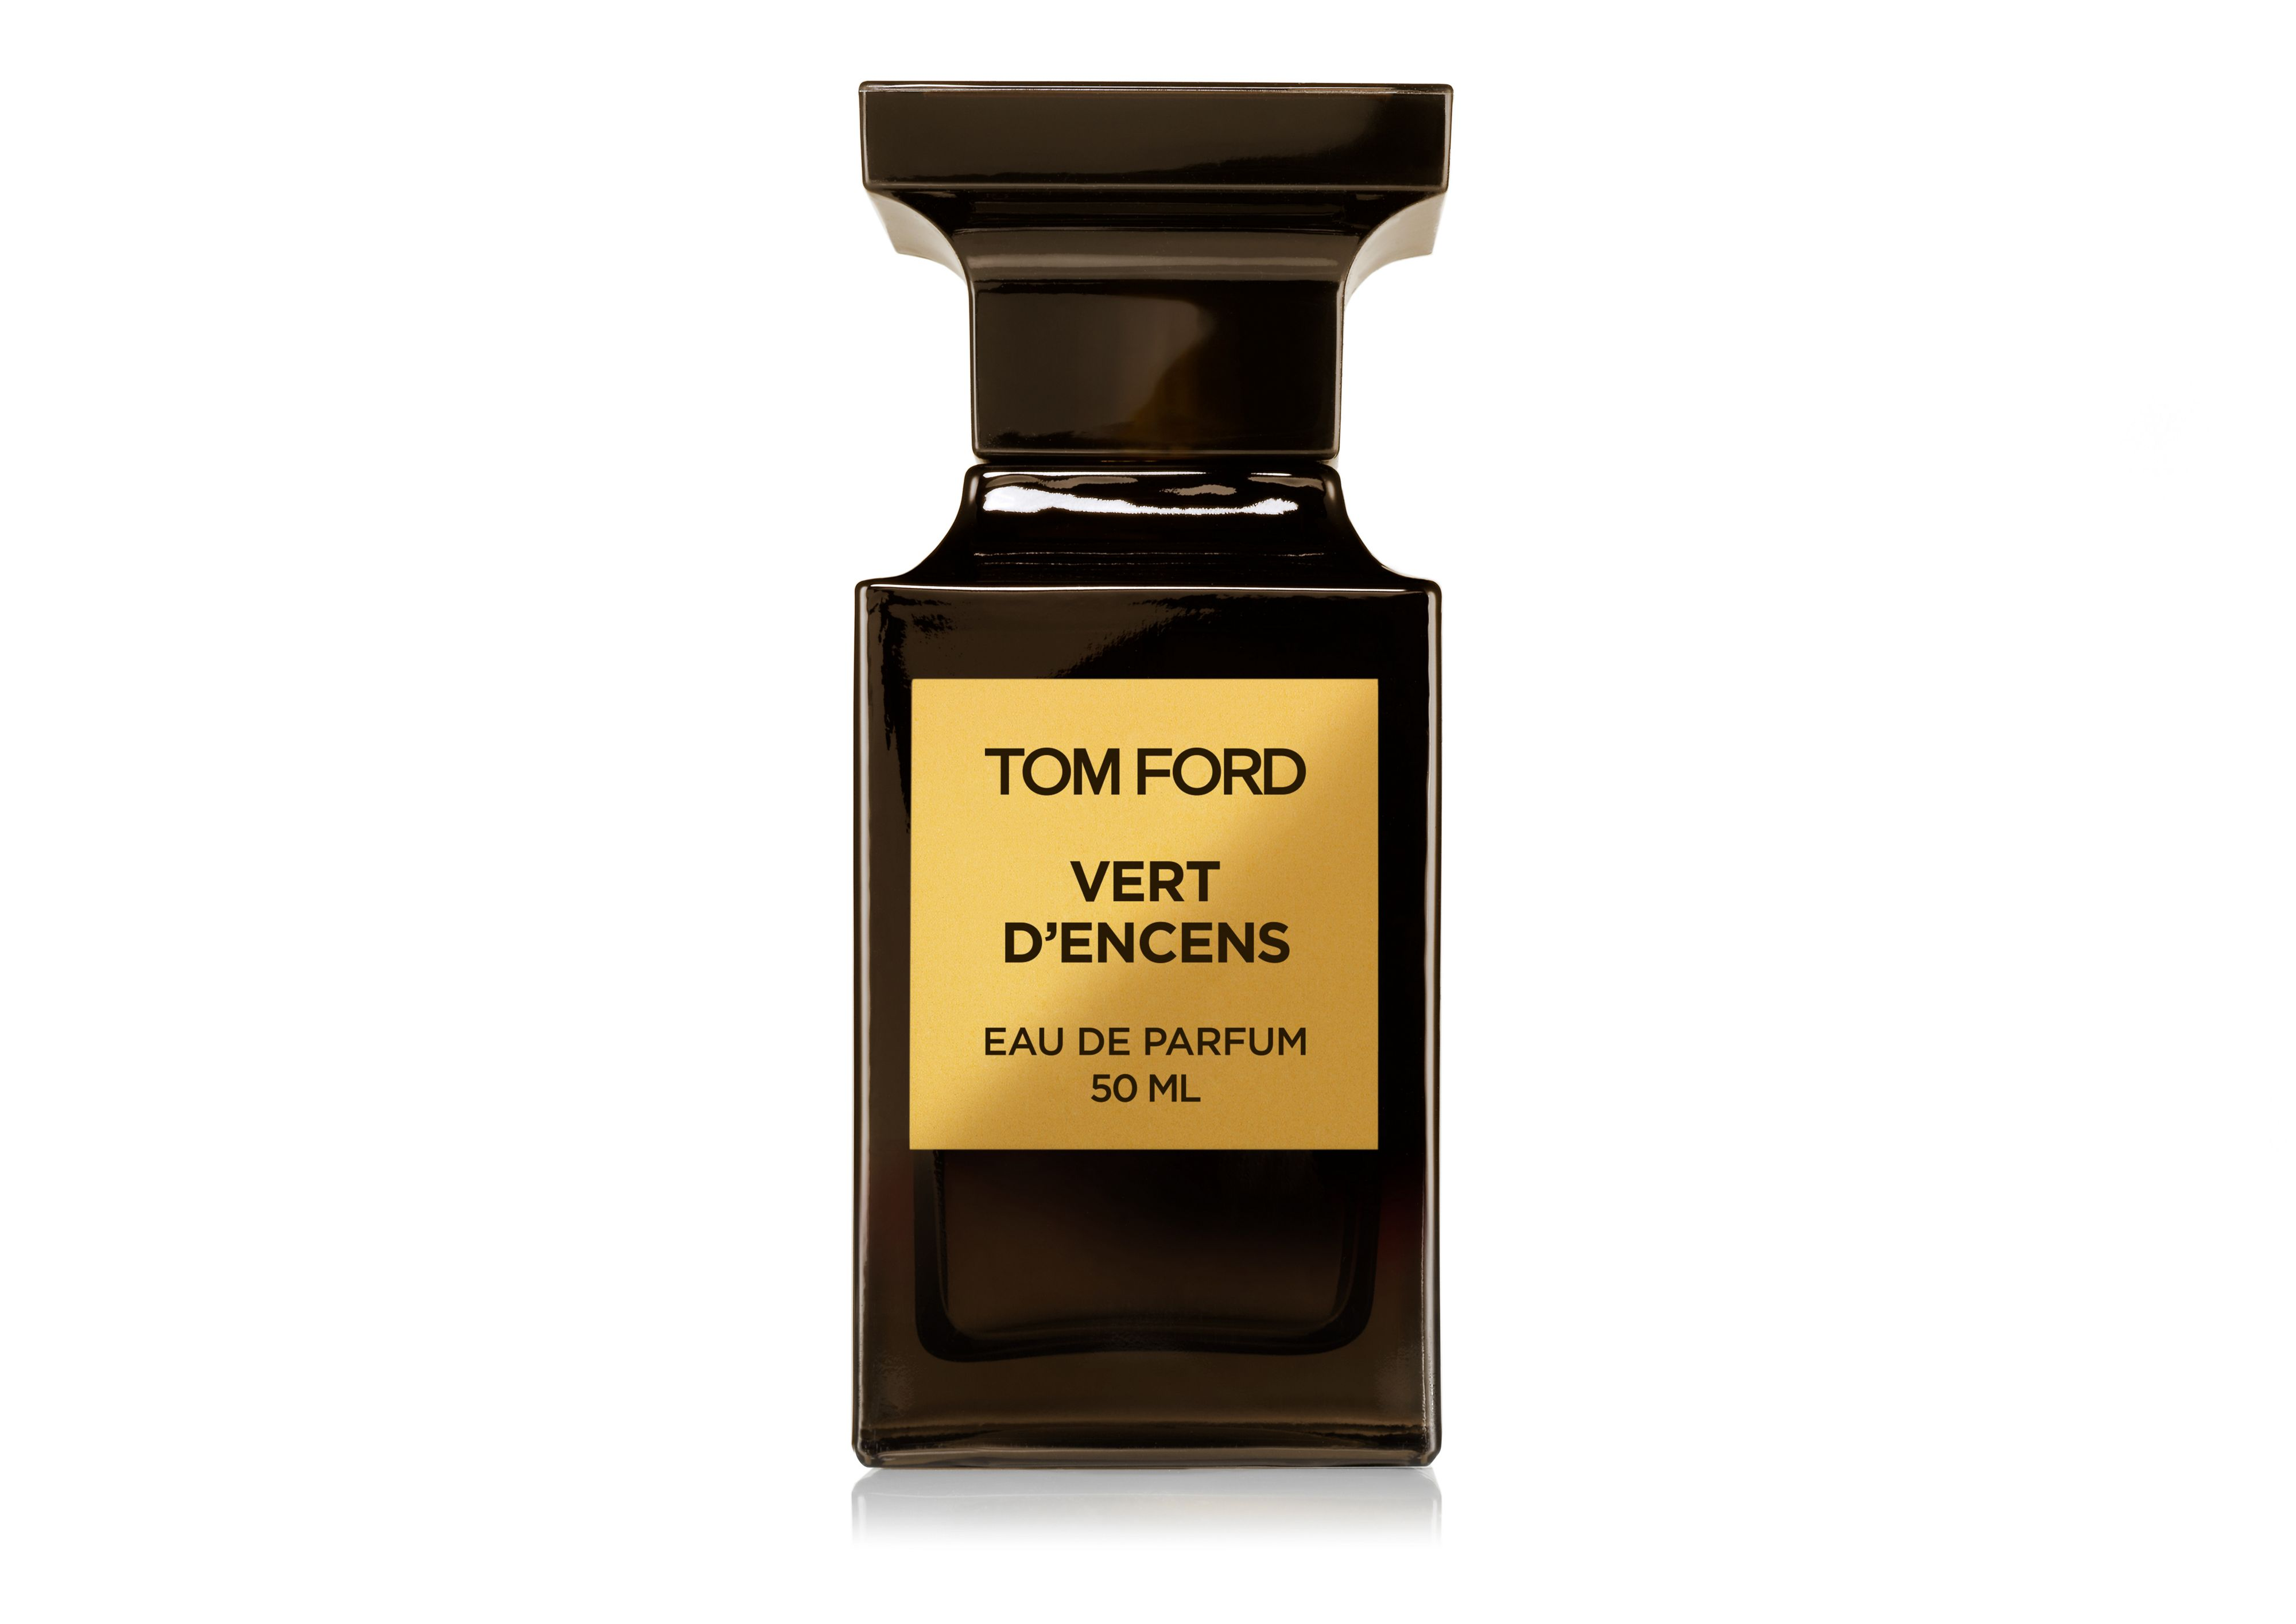 Picturesque Tom Ford Perfume  Shop Aftershave  House Of Fraser With Heavenly Tom Ford Vert Dencens Eau De Parfum Ml  With Amazing Garden Furniture Sale Uk Also Dishoom Covent Garden Menu In Addition Magma Books Covent Garden And Garden Composting As Well As Garden Storage Wooden Additionally Flymo Garden Leaf Blower And Vacuum From Houseoffrasercouk With   Heavenly Tom Ford Perfume  Shop Aftershave  House Of Fraser With Amazing Tom Ford Vert Dencens Eau De Parfum Ml  And Picturesque Garden Furniture Sale Uk Also Dishoom Covent Garden Menu In Addition Magma Books Covent Garden From Houseoffrasercouk